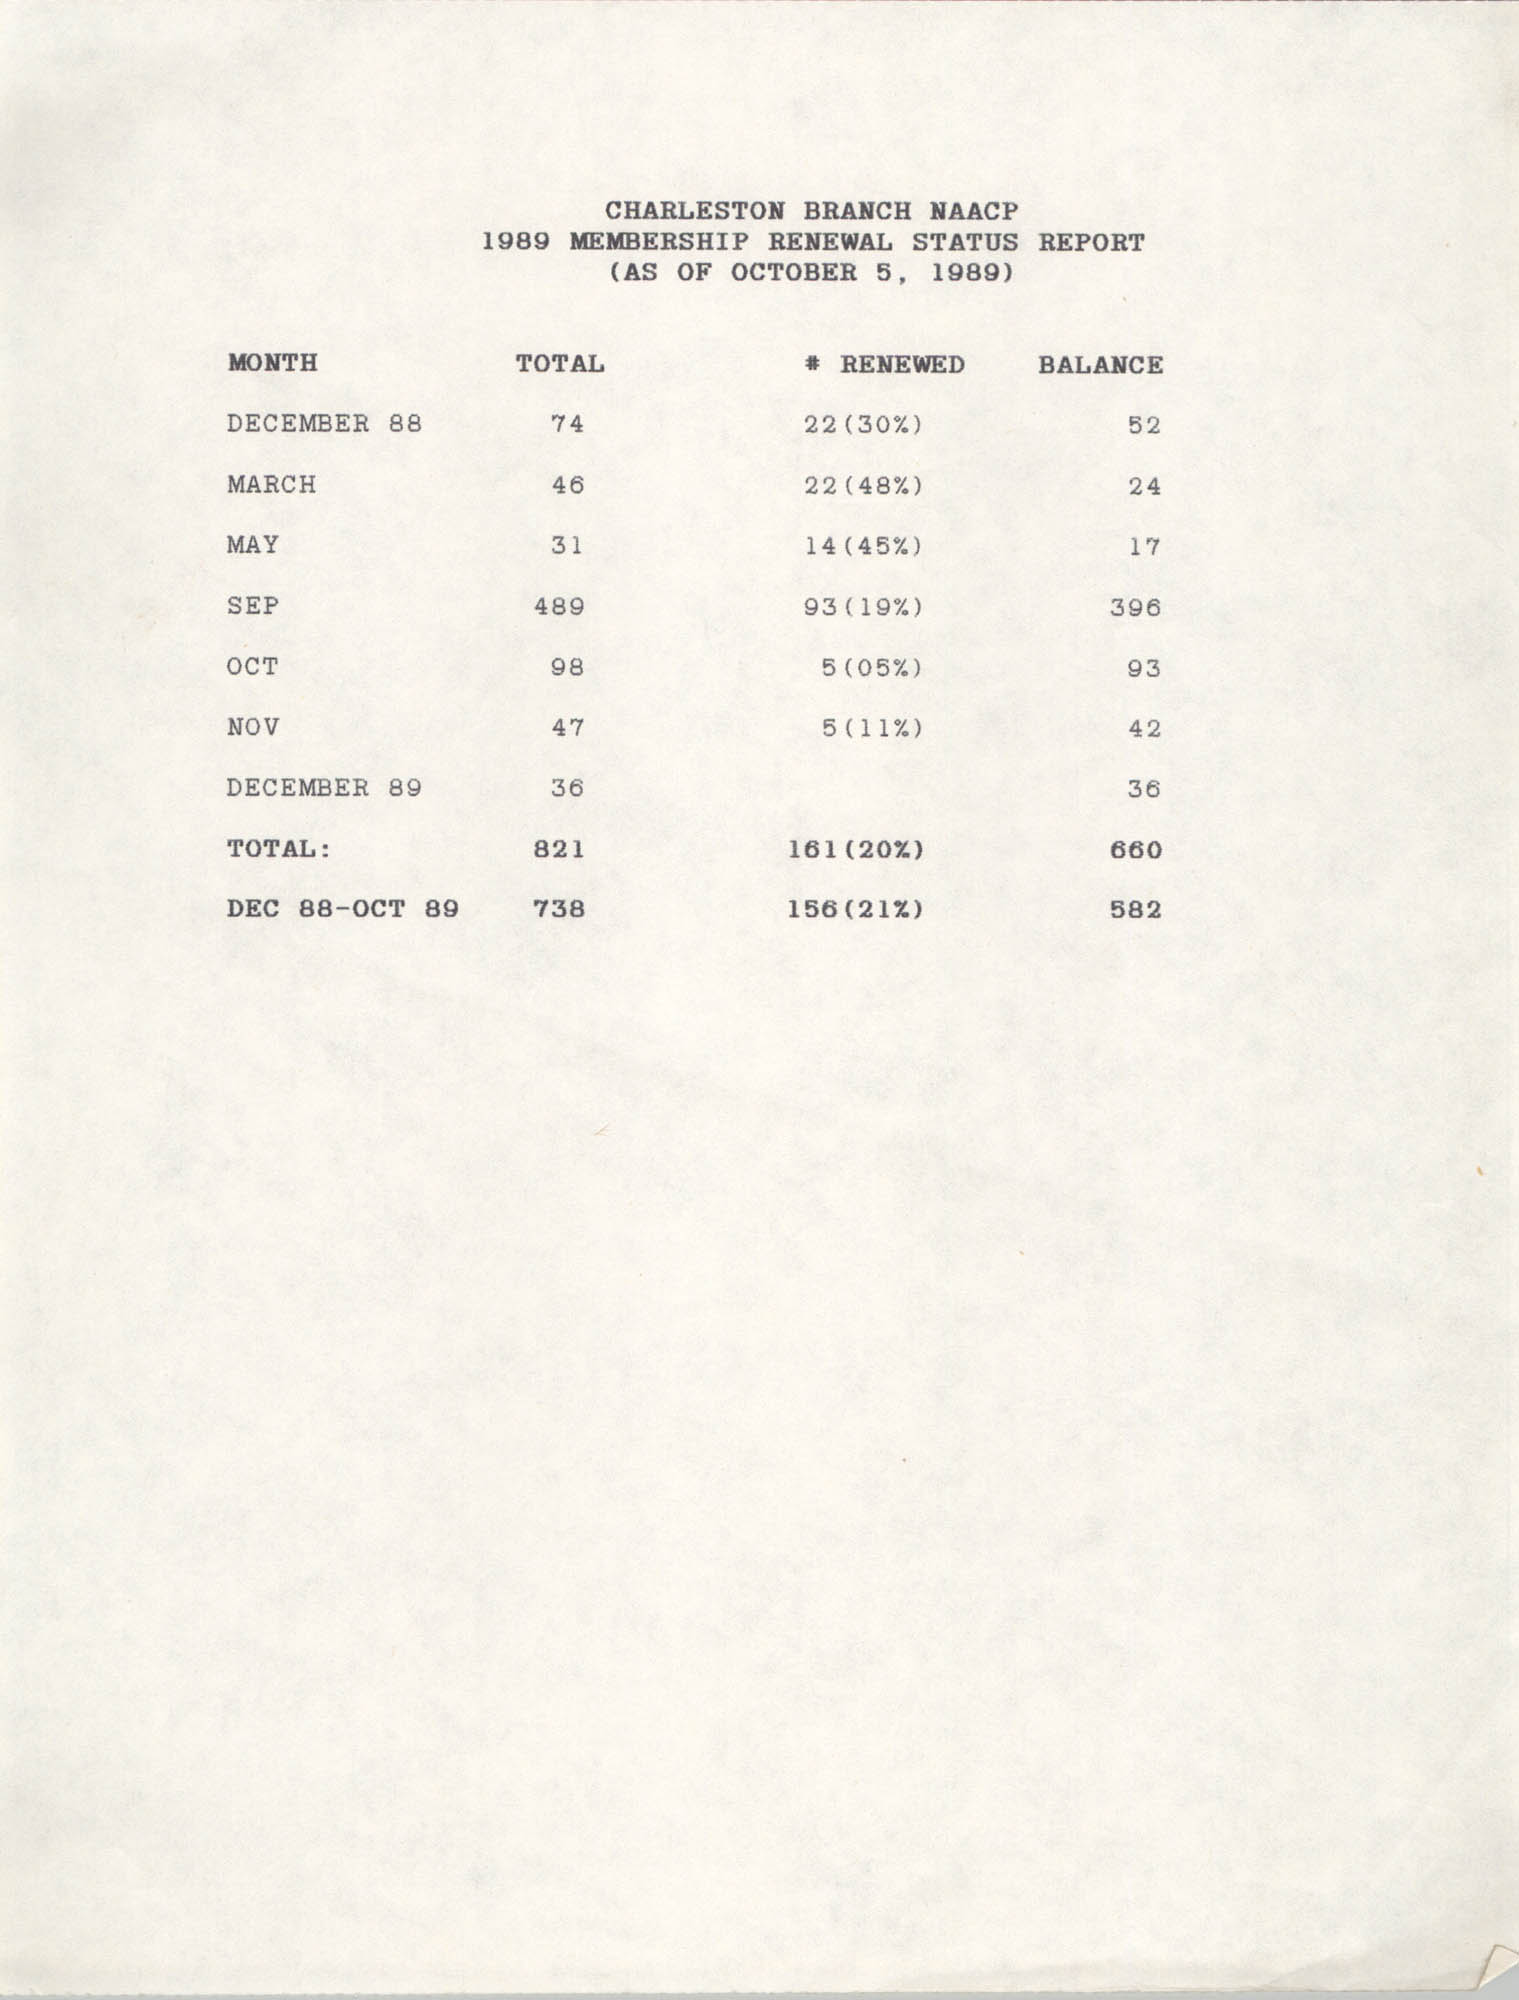 Membership Renewal Status Report, National Association for the Advancement of Colored People, October 5, 1989